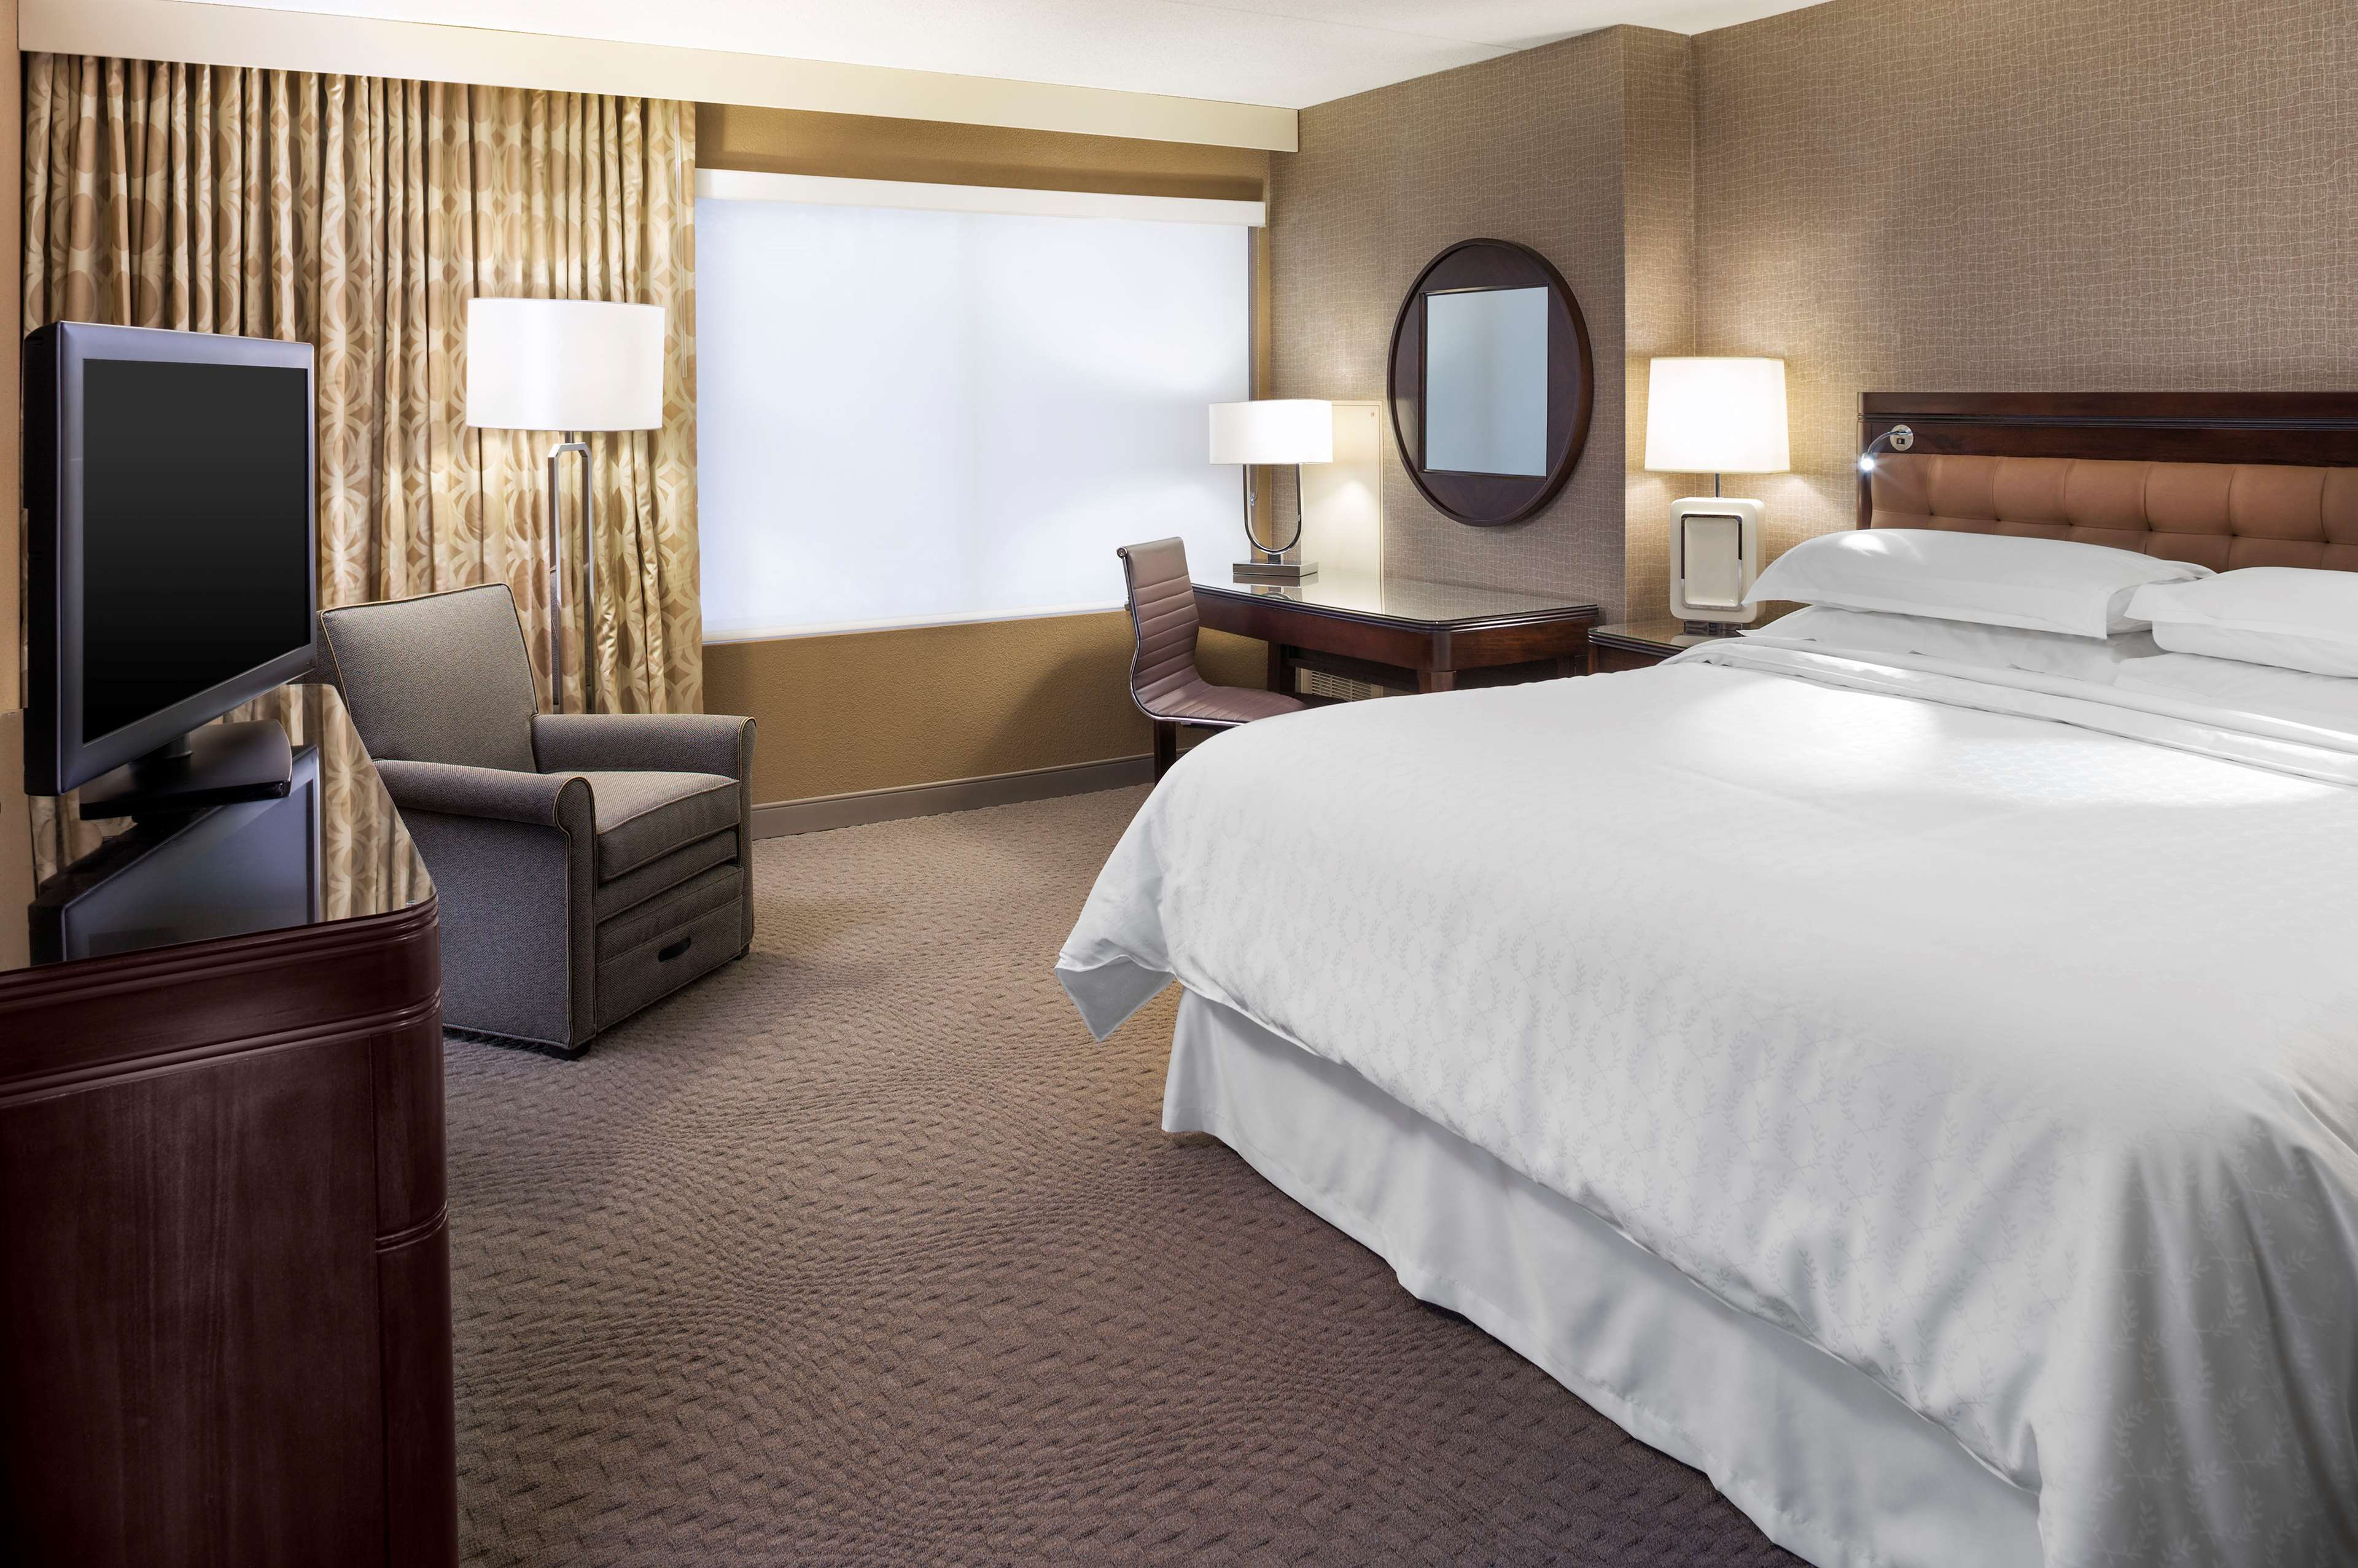 La Quinta Inn & Suites Hartford Bradley Airport hotel is a conveniently located park-and-fly hotel serving Connecticut's Bradley International Airport travelers.